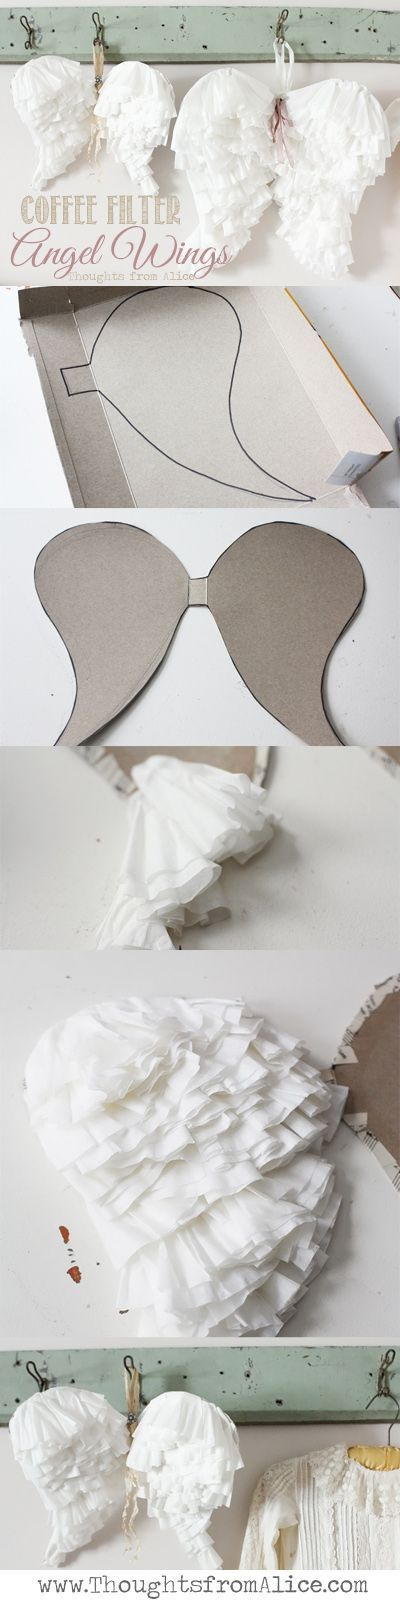 Thoughts from Alice: Coffee Filter Angel Wings {DIY}